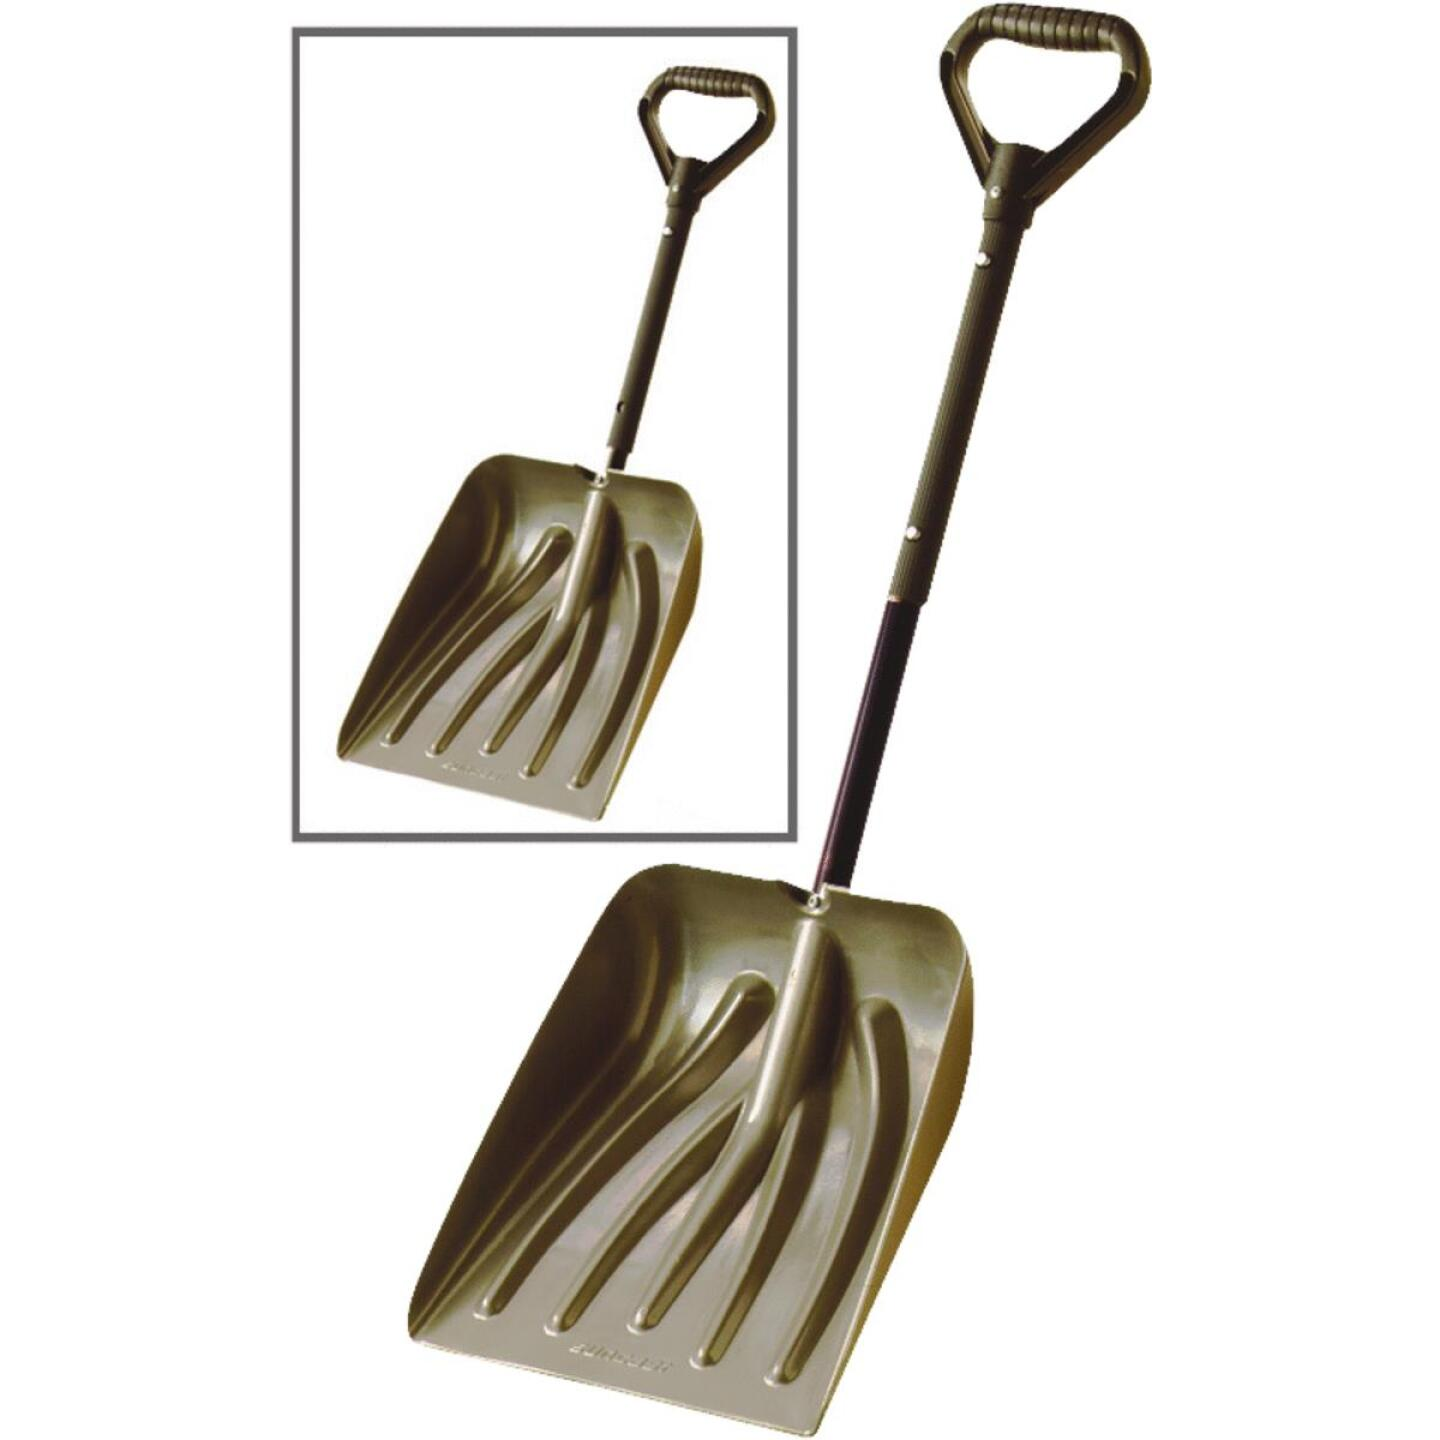 Suncast 11 In. Graphite Emergency Automotive Snow Shovel with 36 In. Steel Telescoping Handle Image 1